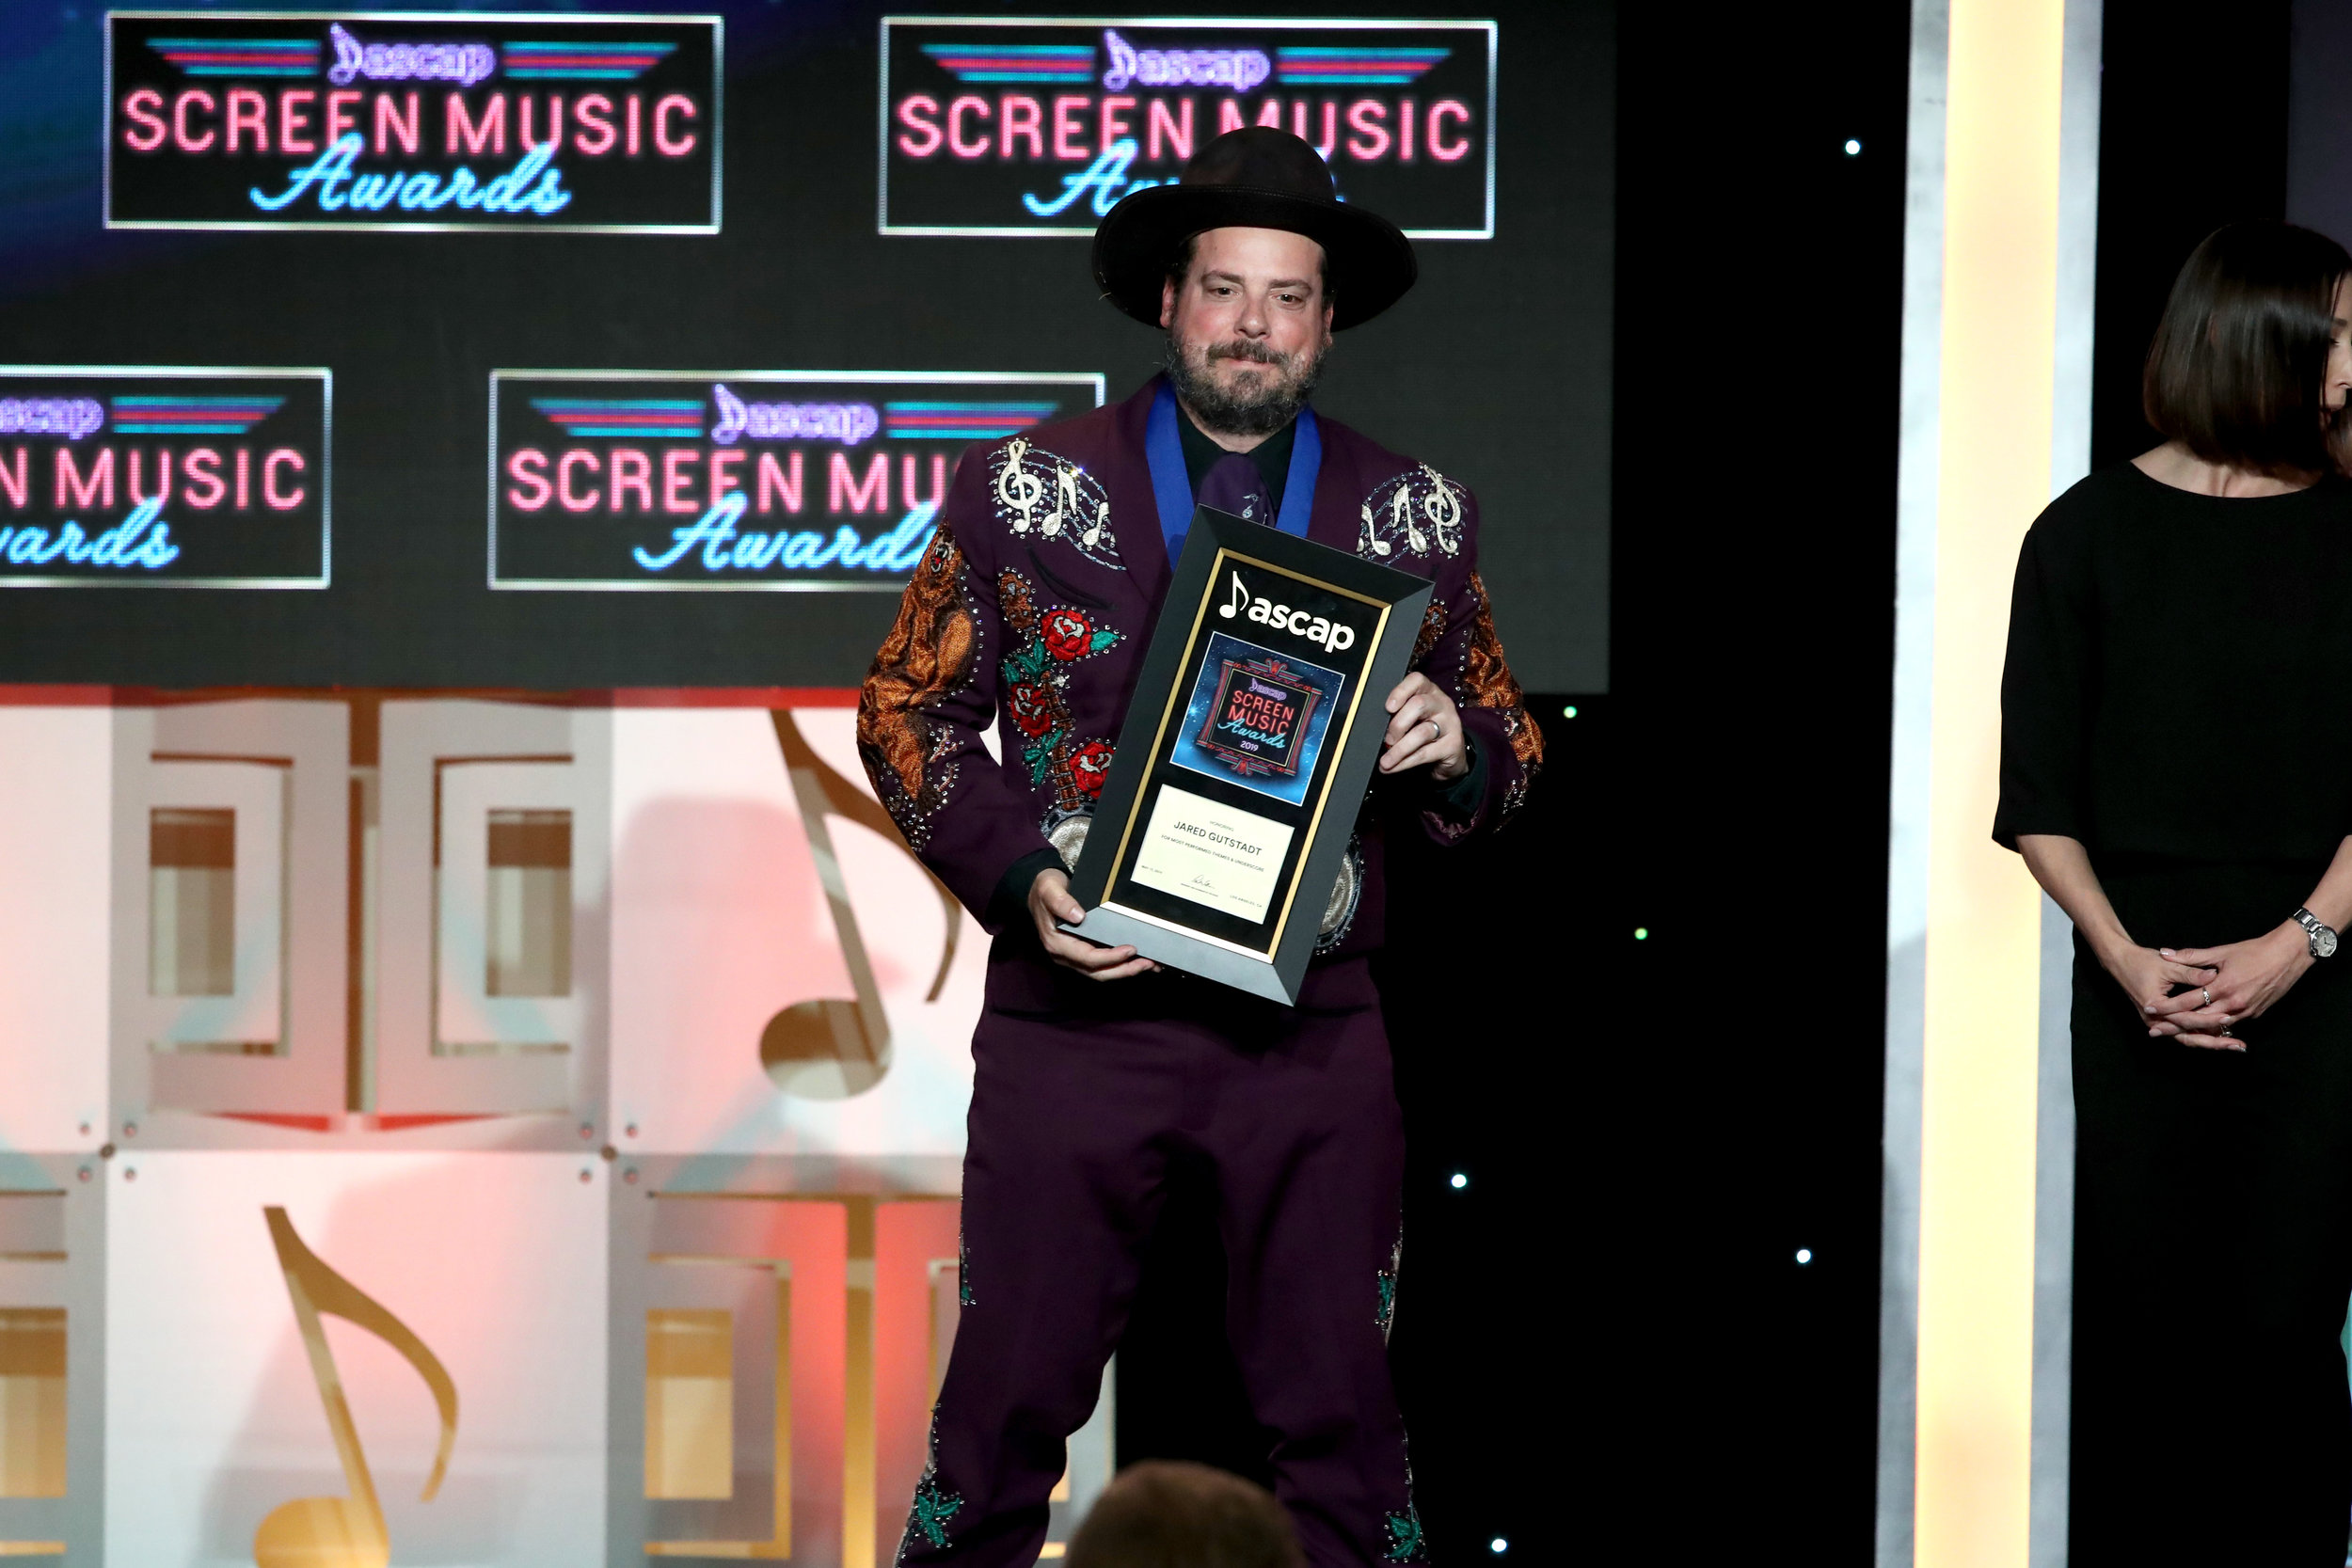 BEVERLY HILLS, CALIFORNIA - MAY 15: Composer Jared Gutstadt, winner of the award for Most Performed Themes and Underscores stands onstage during the ASCAP 2019 Screen Music Awards at The Beverly Hilton Hotel on May 15, 2019 in Beverly Hills, California. (Photo by Ari Perilstein/Getty Images for ASCAP)